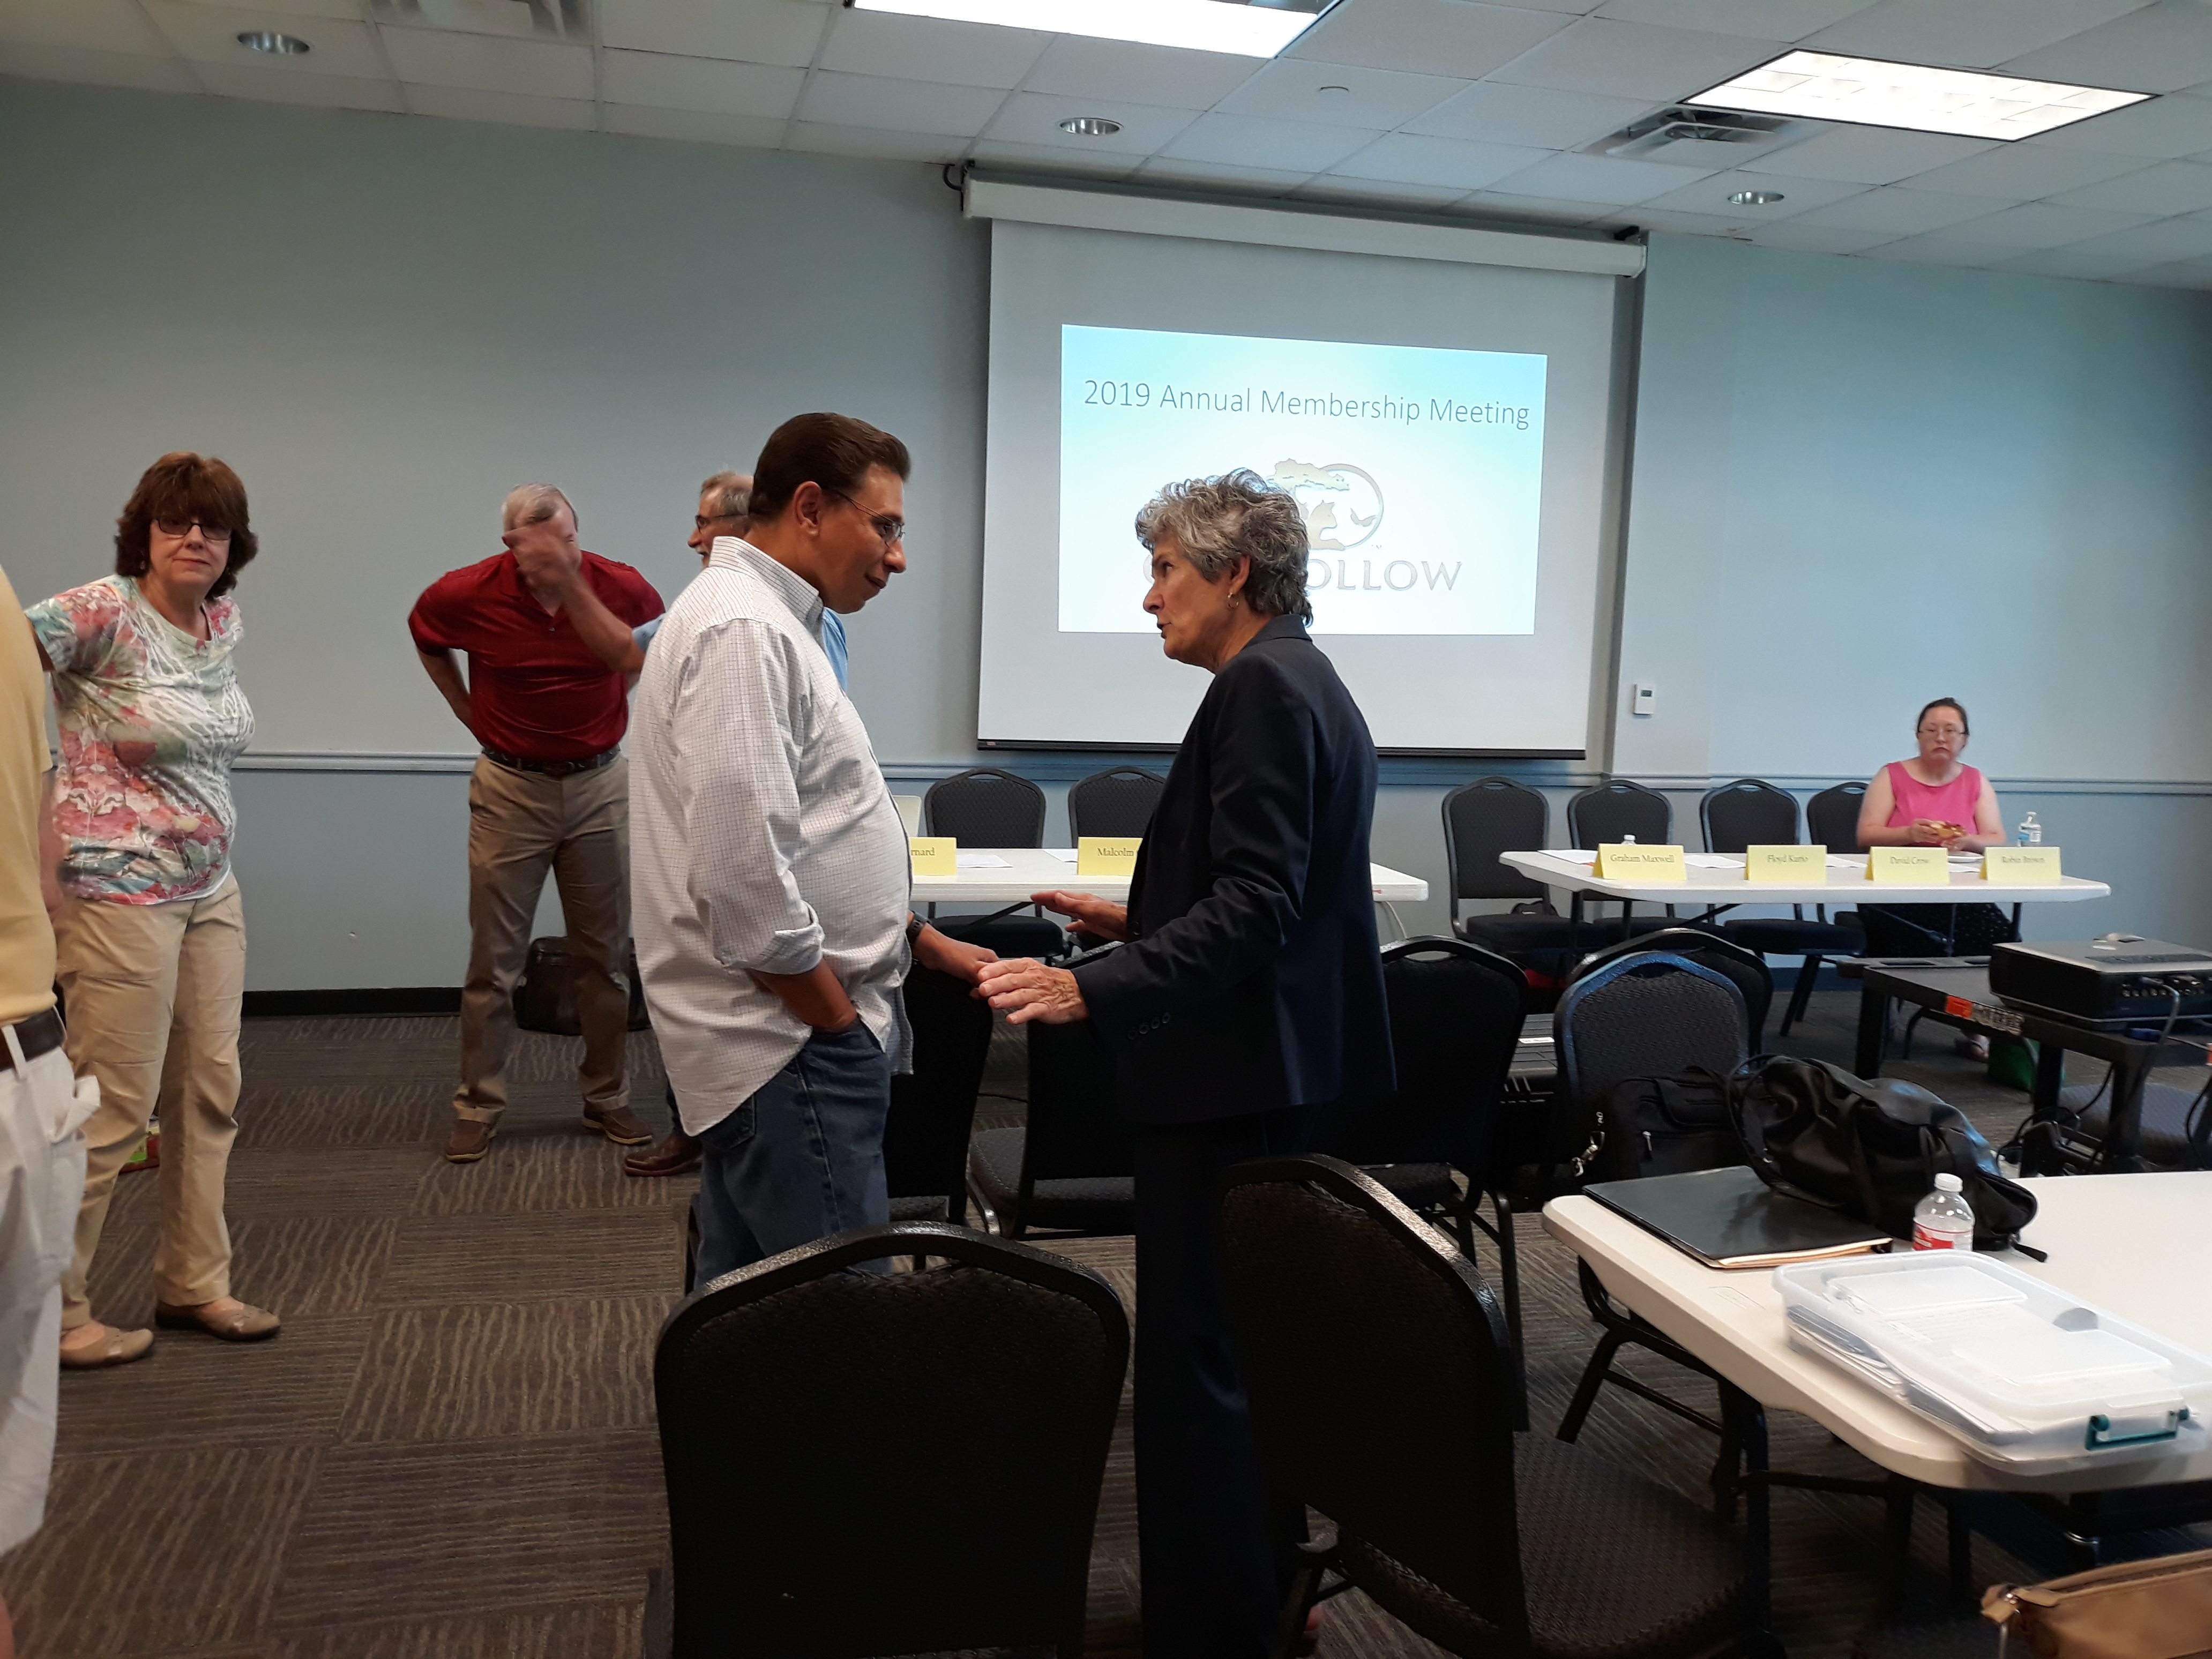 Commissioner Cook confers with HOA Board President Graham Maxwell before the meeting begins.